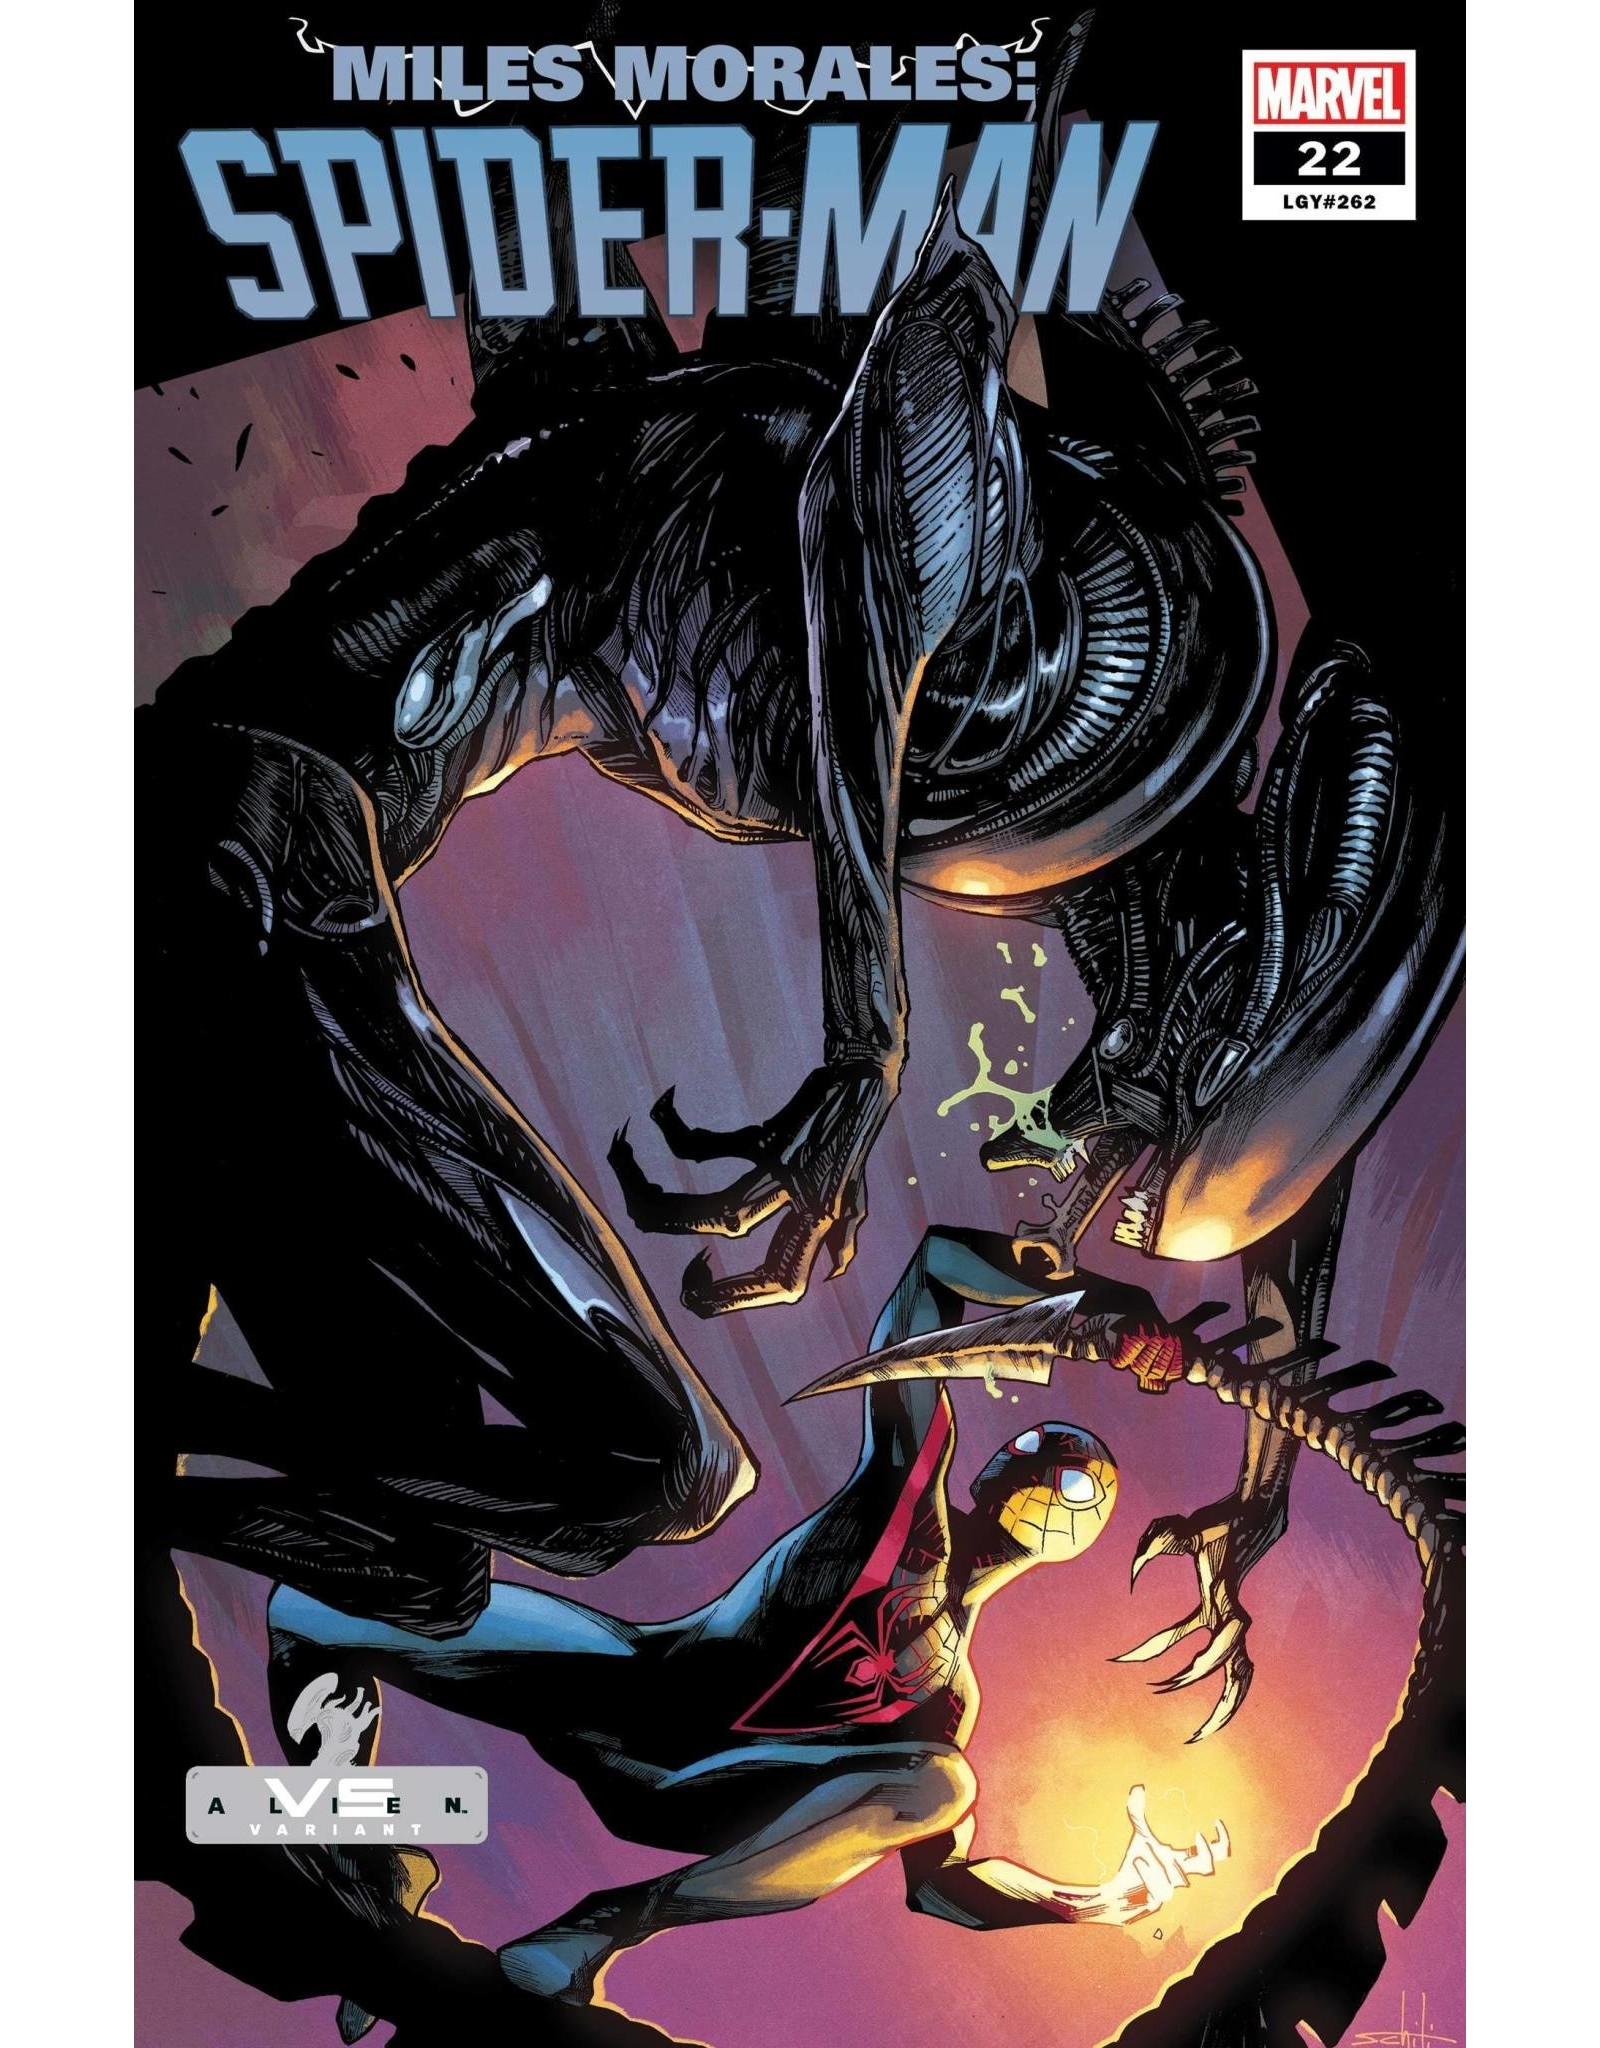 Marvel Comics MILES MORALES SPIDER-MAN #22 SCHITI MARVEL VS ALIEN VAR